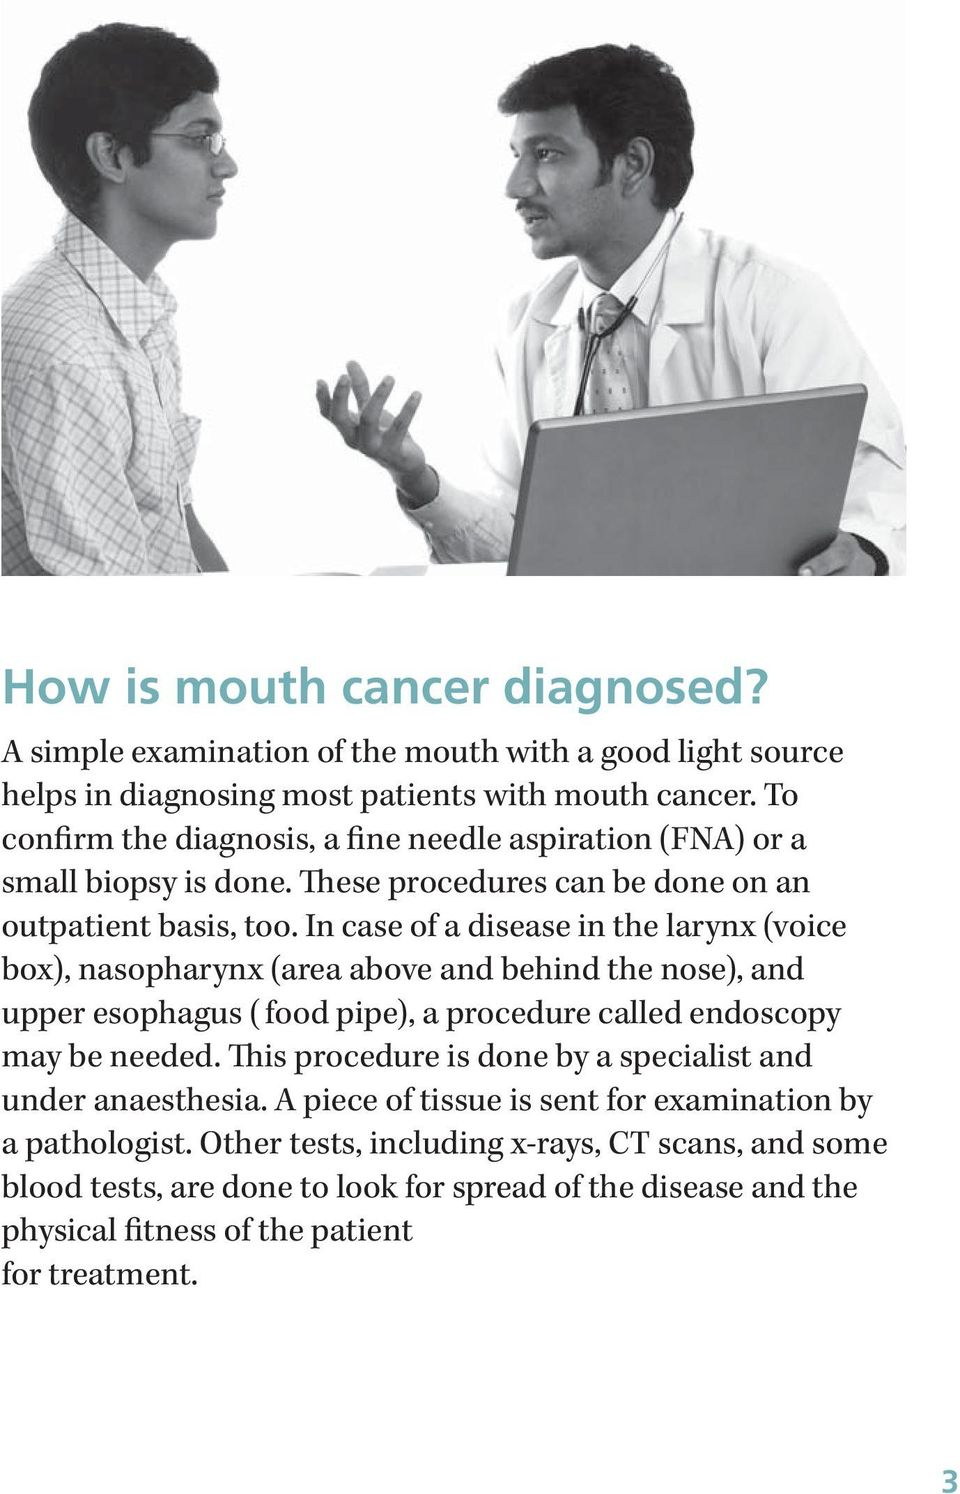 In case of a disease in the larynx (voice box), nasopharynx (area above and behind the nose), and upper esophagus ( food pipe), a procedure called endoscopy may be needed.